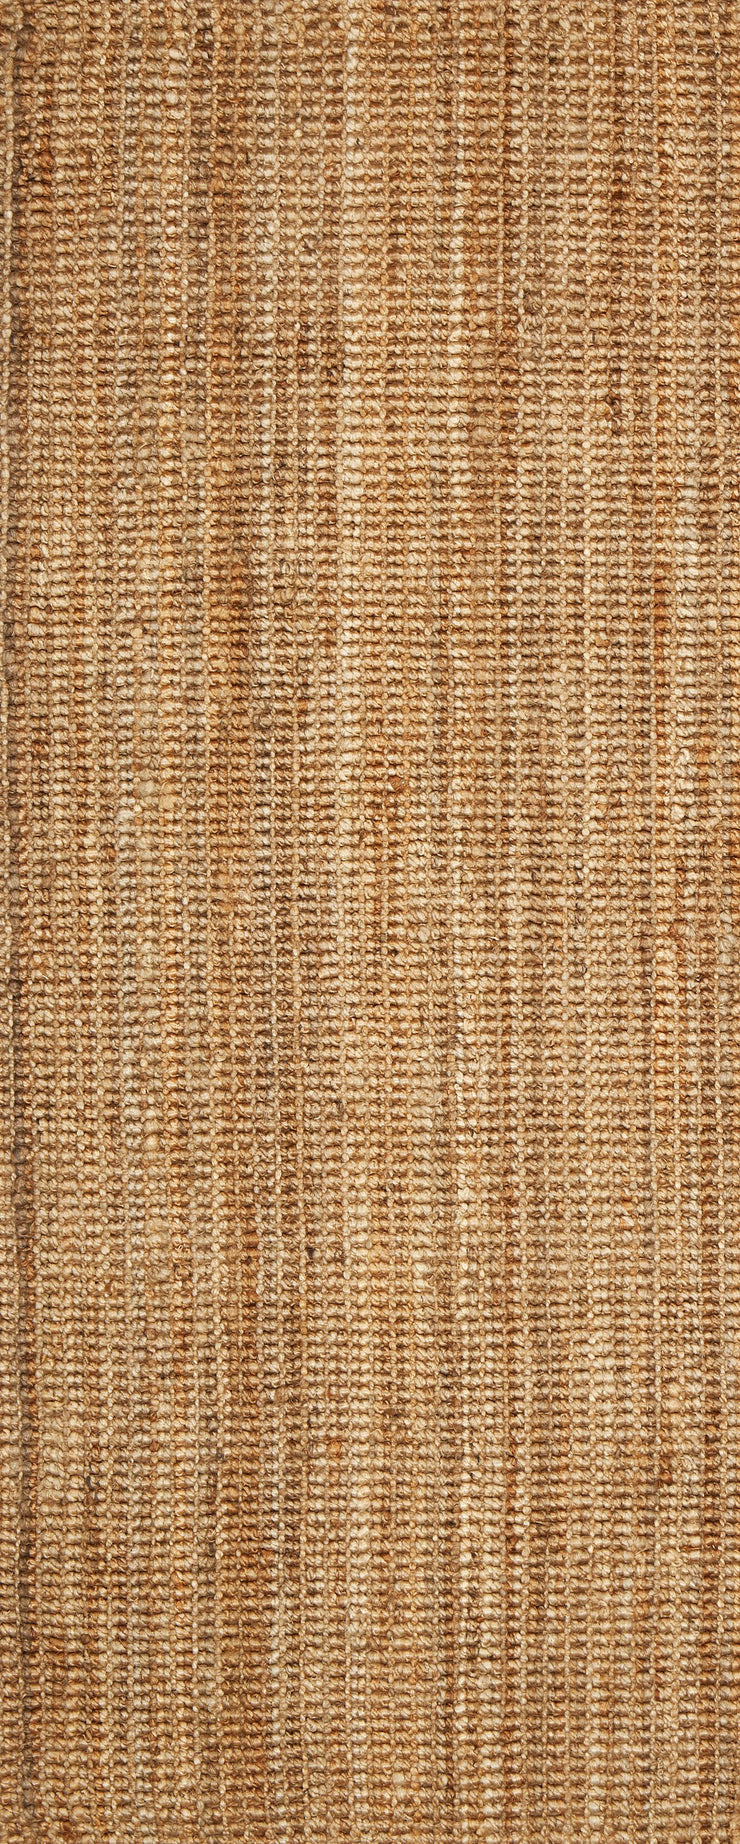 Jute - Estate Natural Hand Braided Floor Runner - Stella Rugs